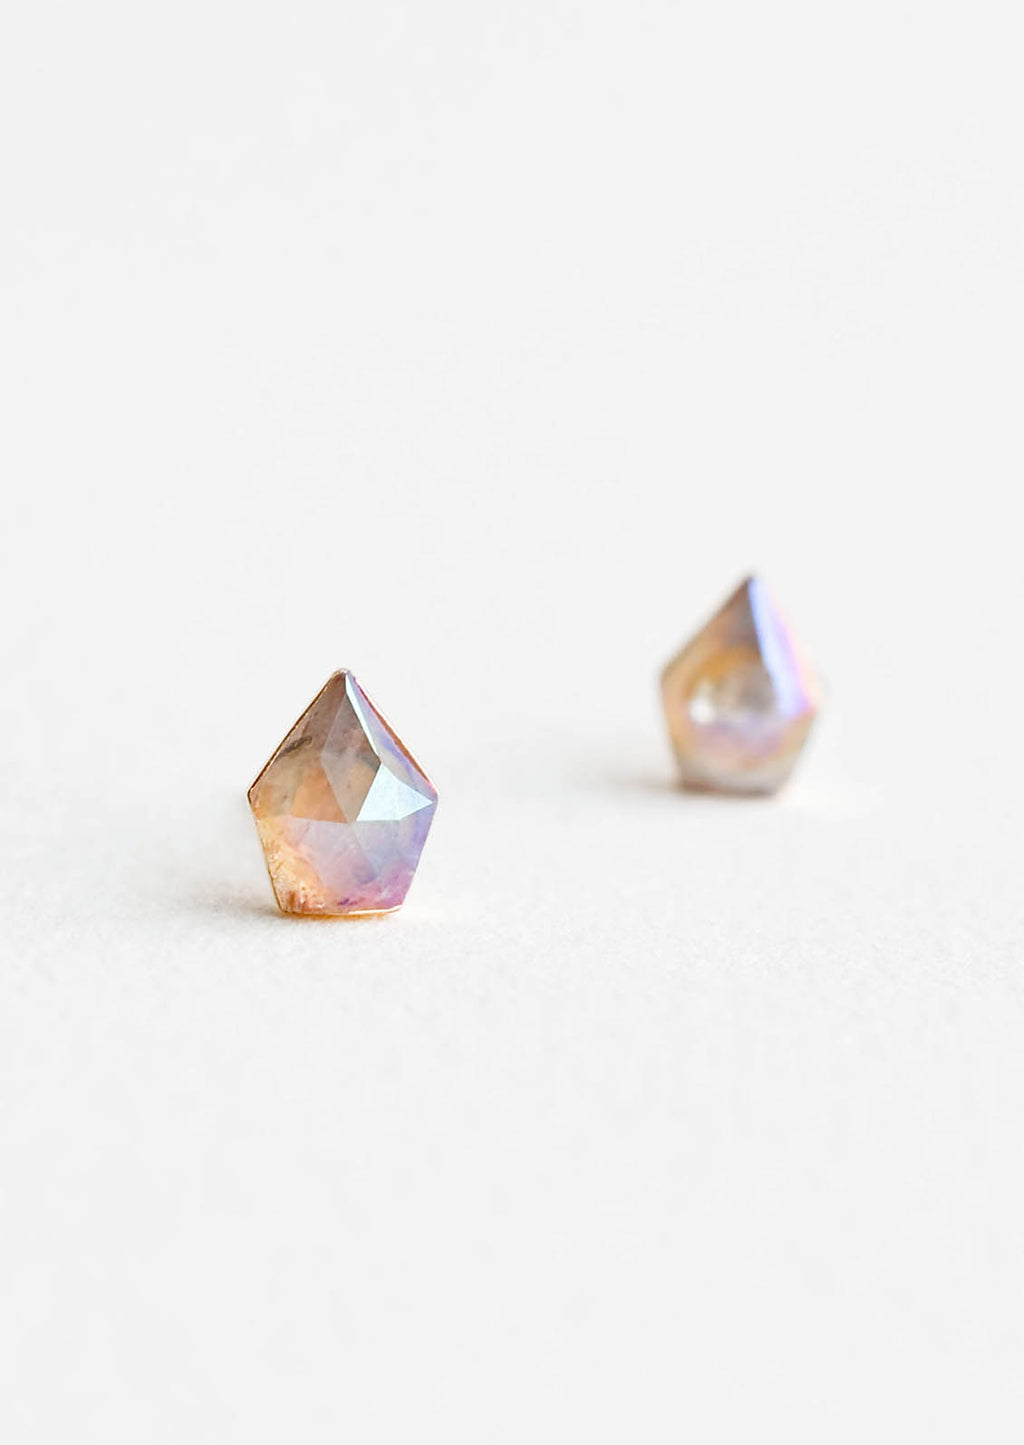 1: Iridescent Gem Stud Earrings